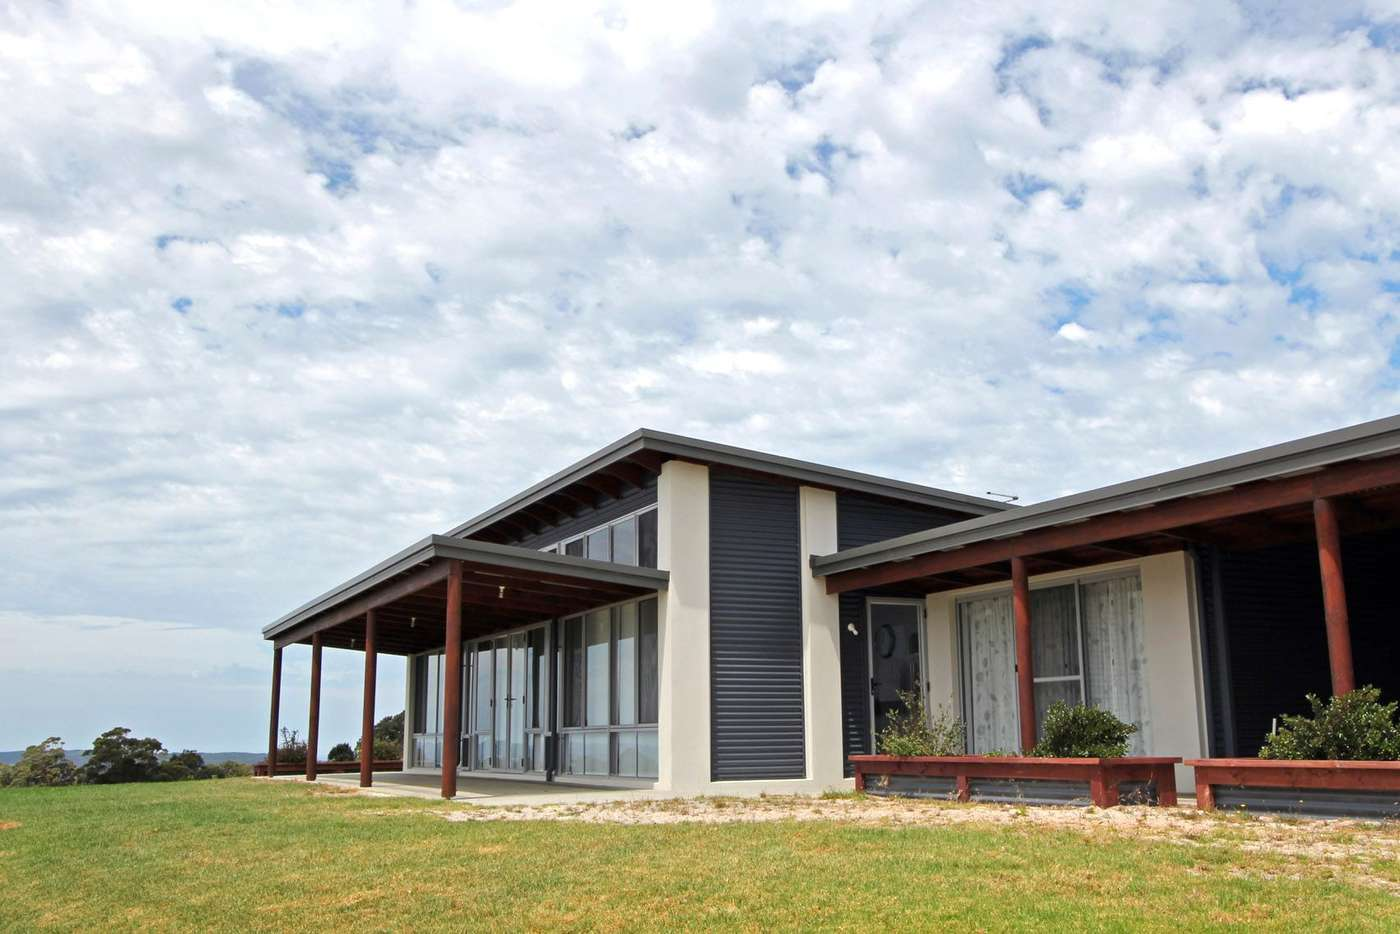 Main view of Homely house listing, 161 Peace Street, Denmark WA 6333